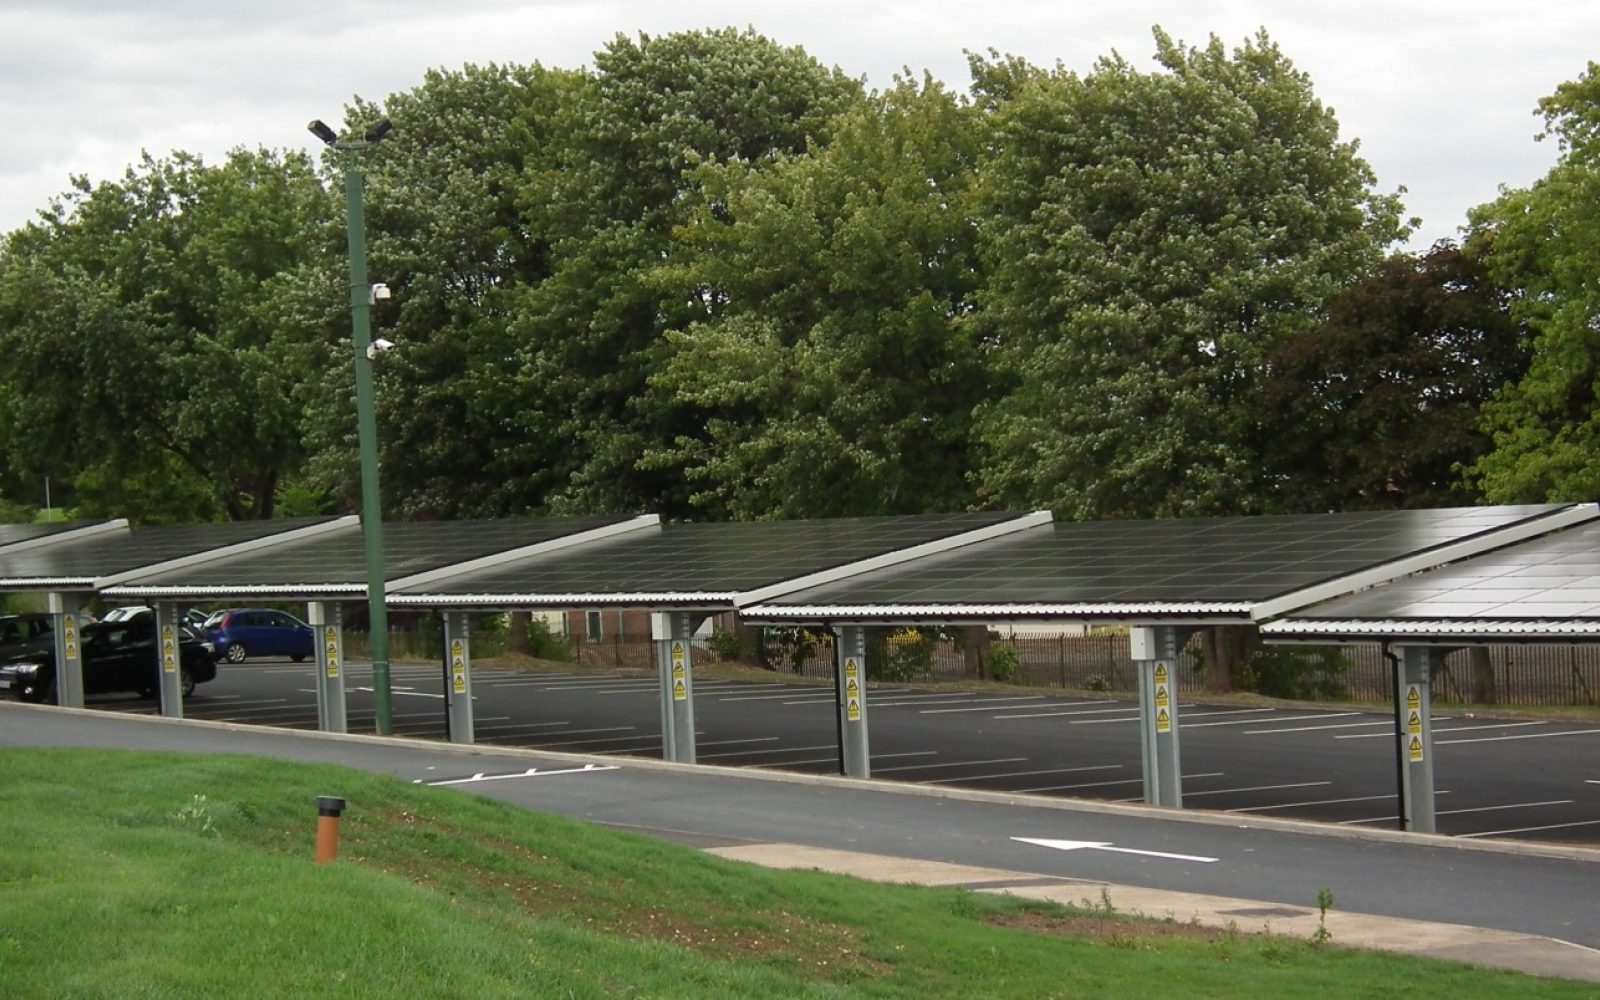 Local governments seeing the light with solar carports